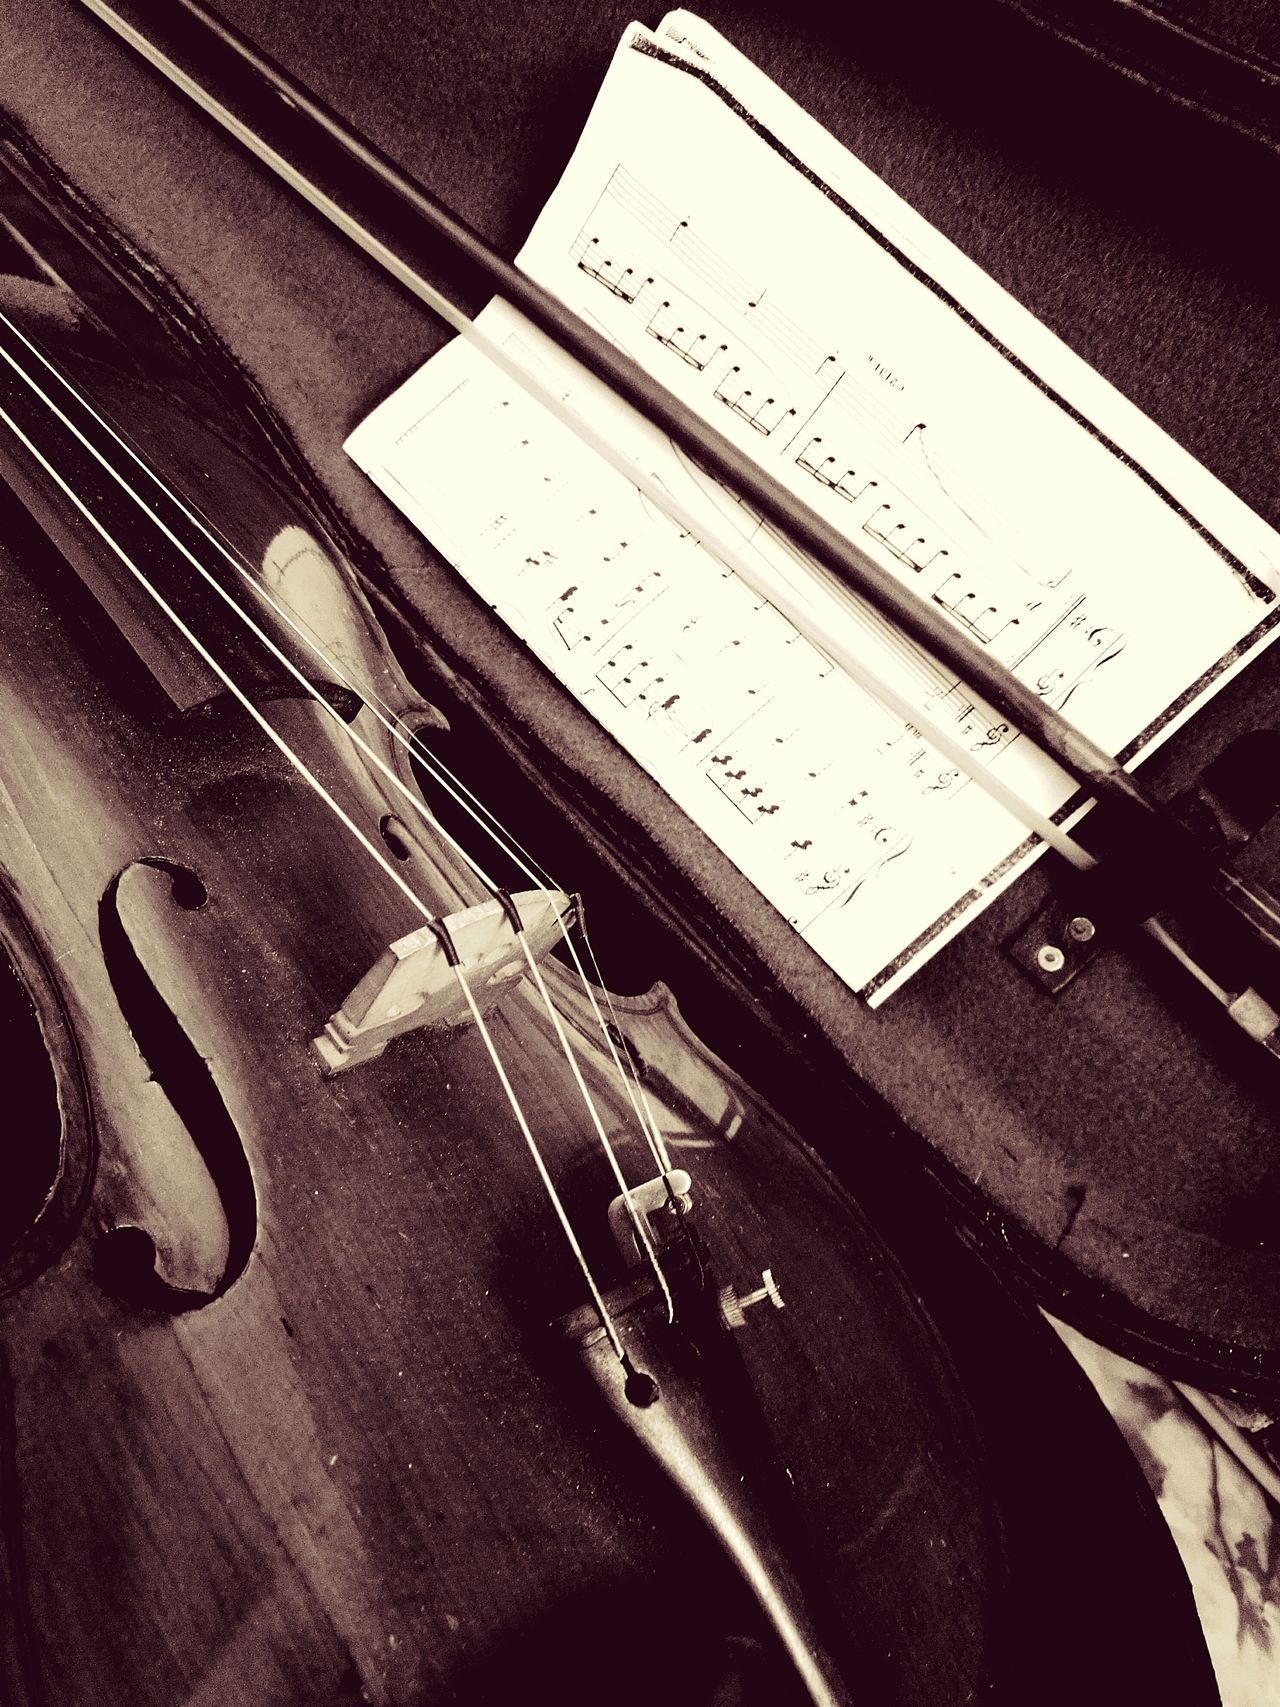 High Angle View Musical Instrument Arts Culture And Entertainment Violin Strings Music String Instrument Musical Equipment Violin <3 Violin Wooden Texture Violin Soul Musical Instrument String Music Is My Life Music Time Music Is Life Musik Musical Instruments Music.s Inspiration Musical Notes EyeEmNewHere